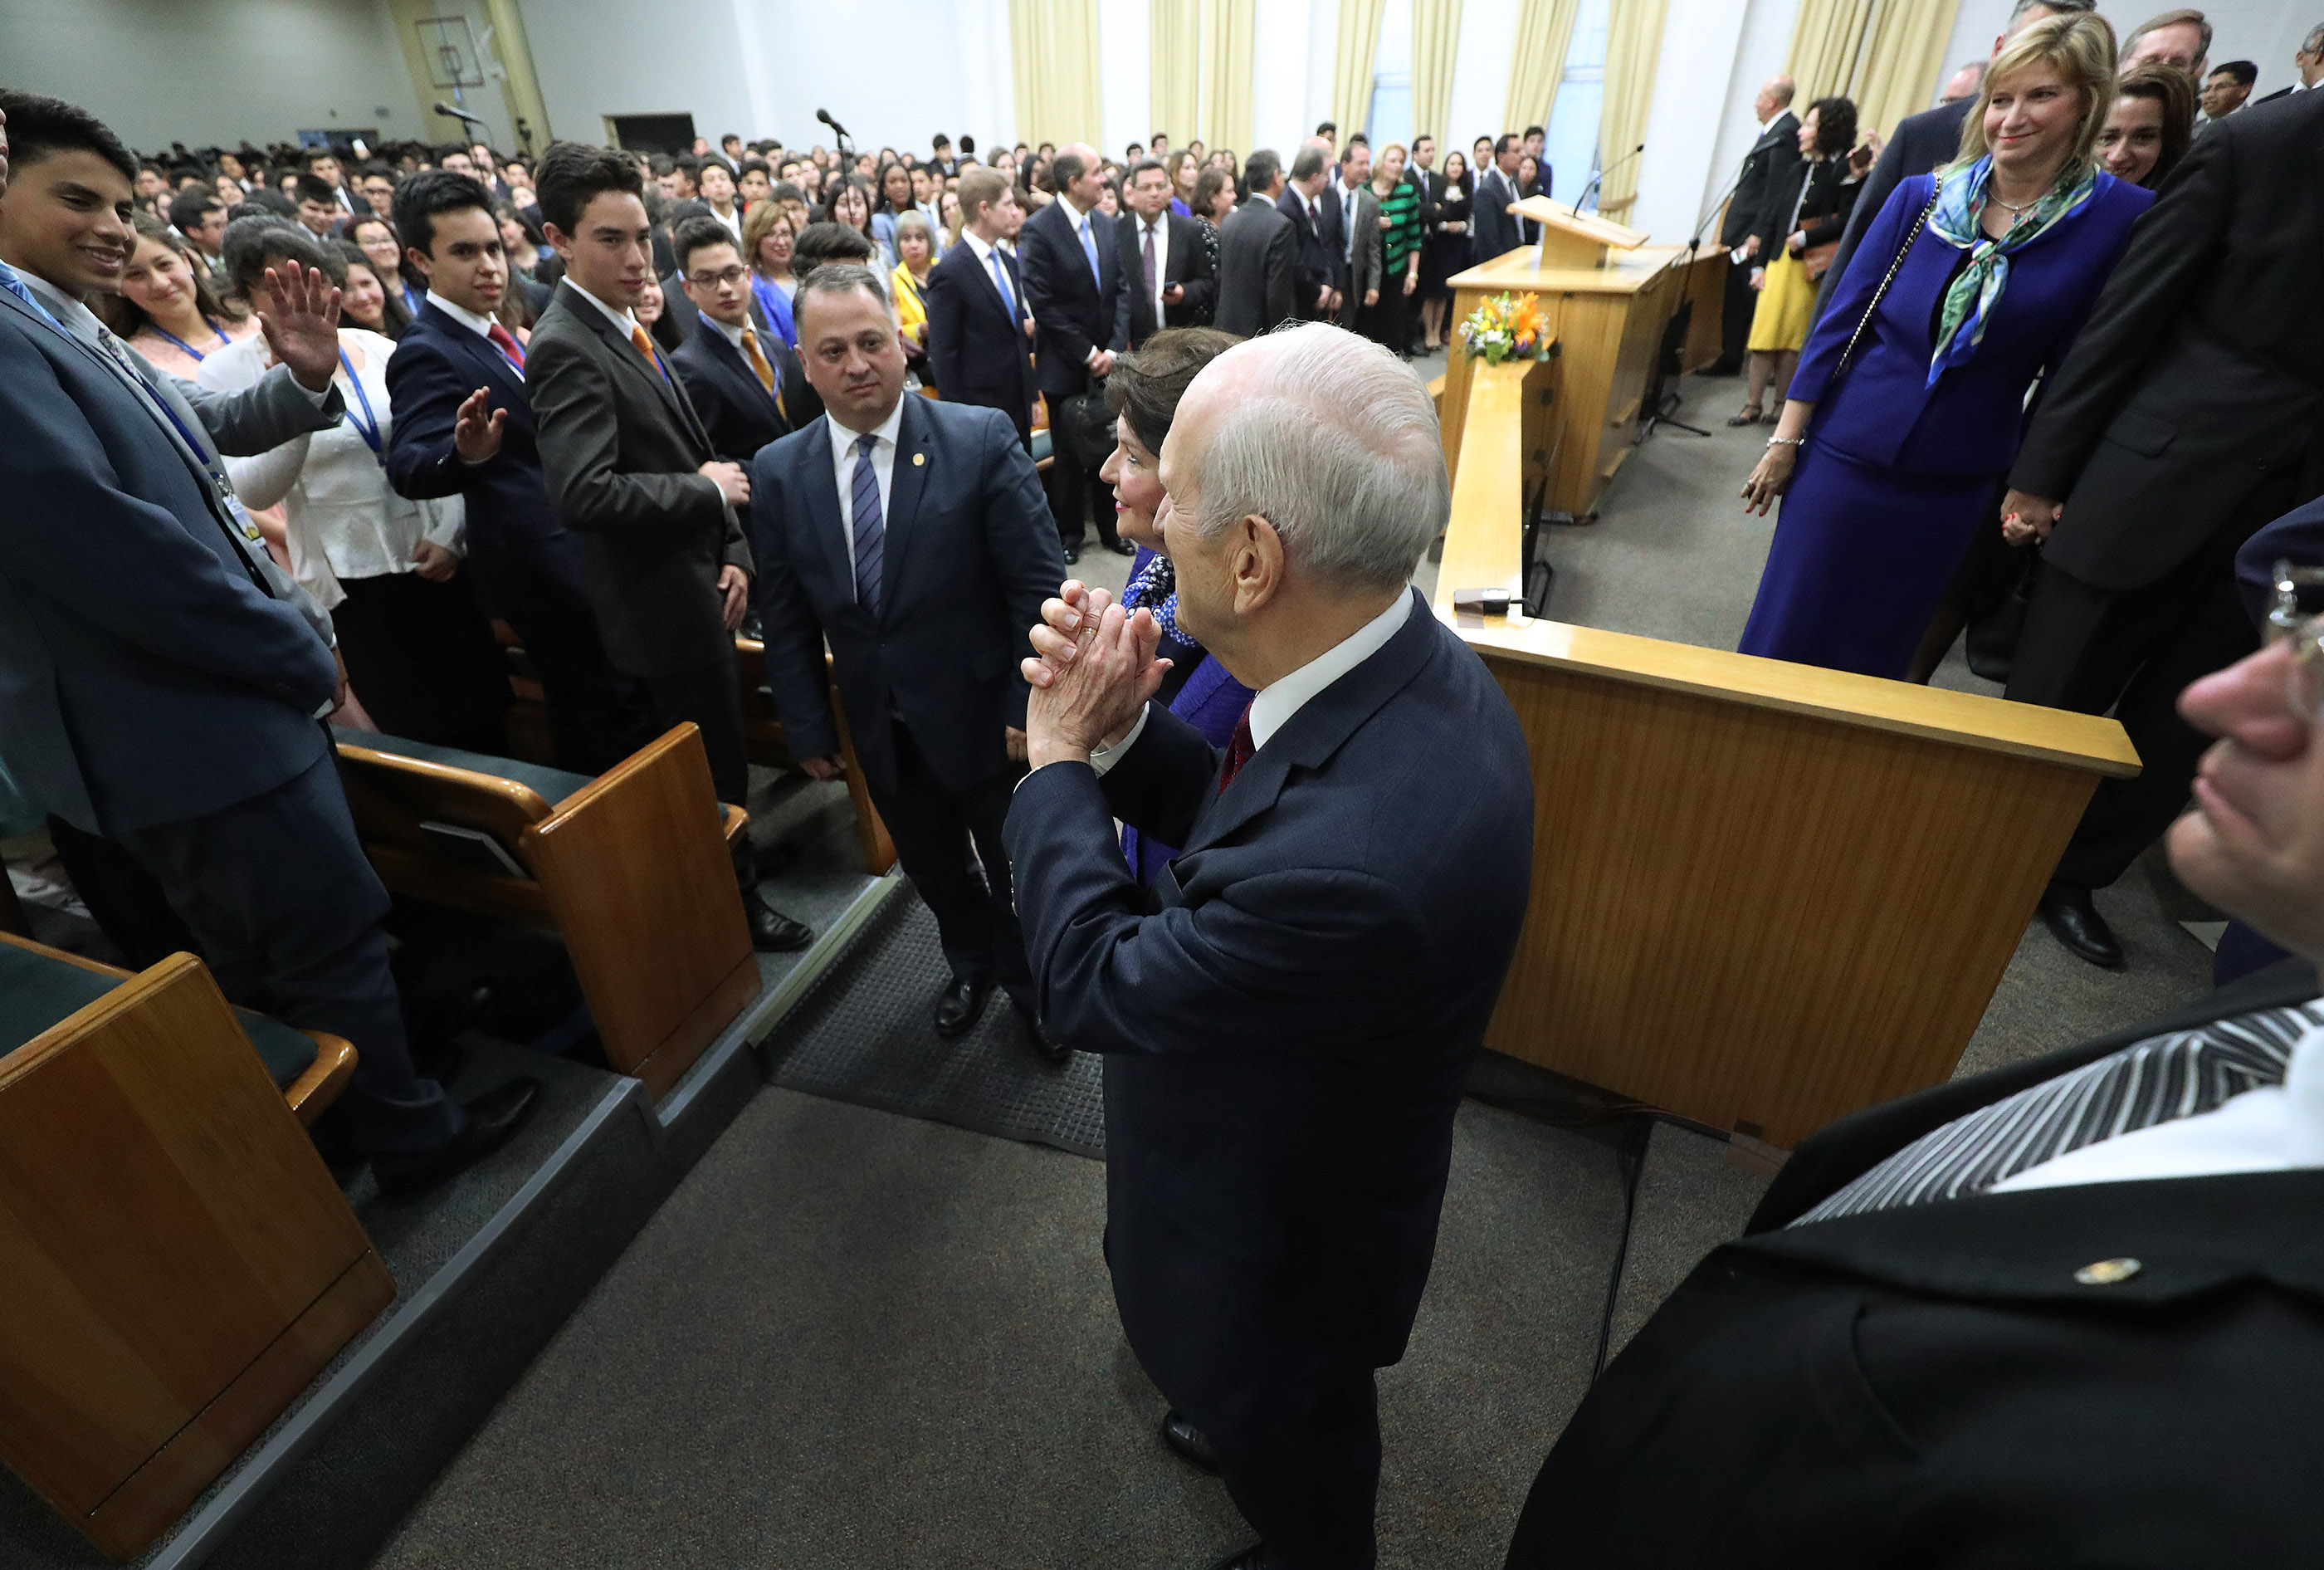 President Russell M. Nelson of The Church of Jesus Christ of Latter-day Saints gestures to attendees after a youth devotional in Concepcion, Chile, on Saturday, Oct. 27, 2018.